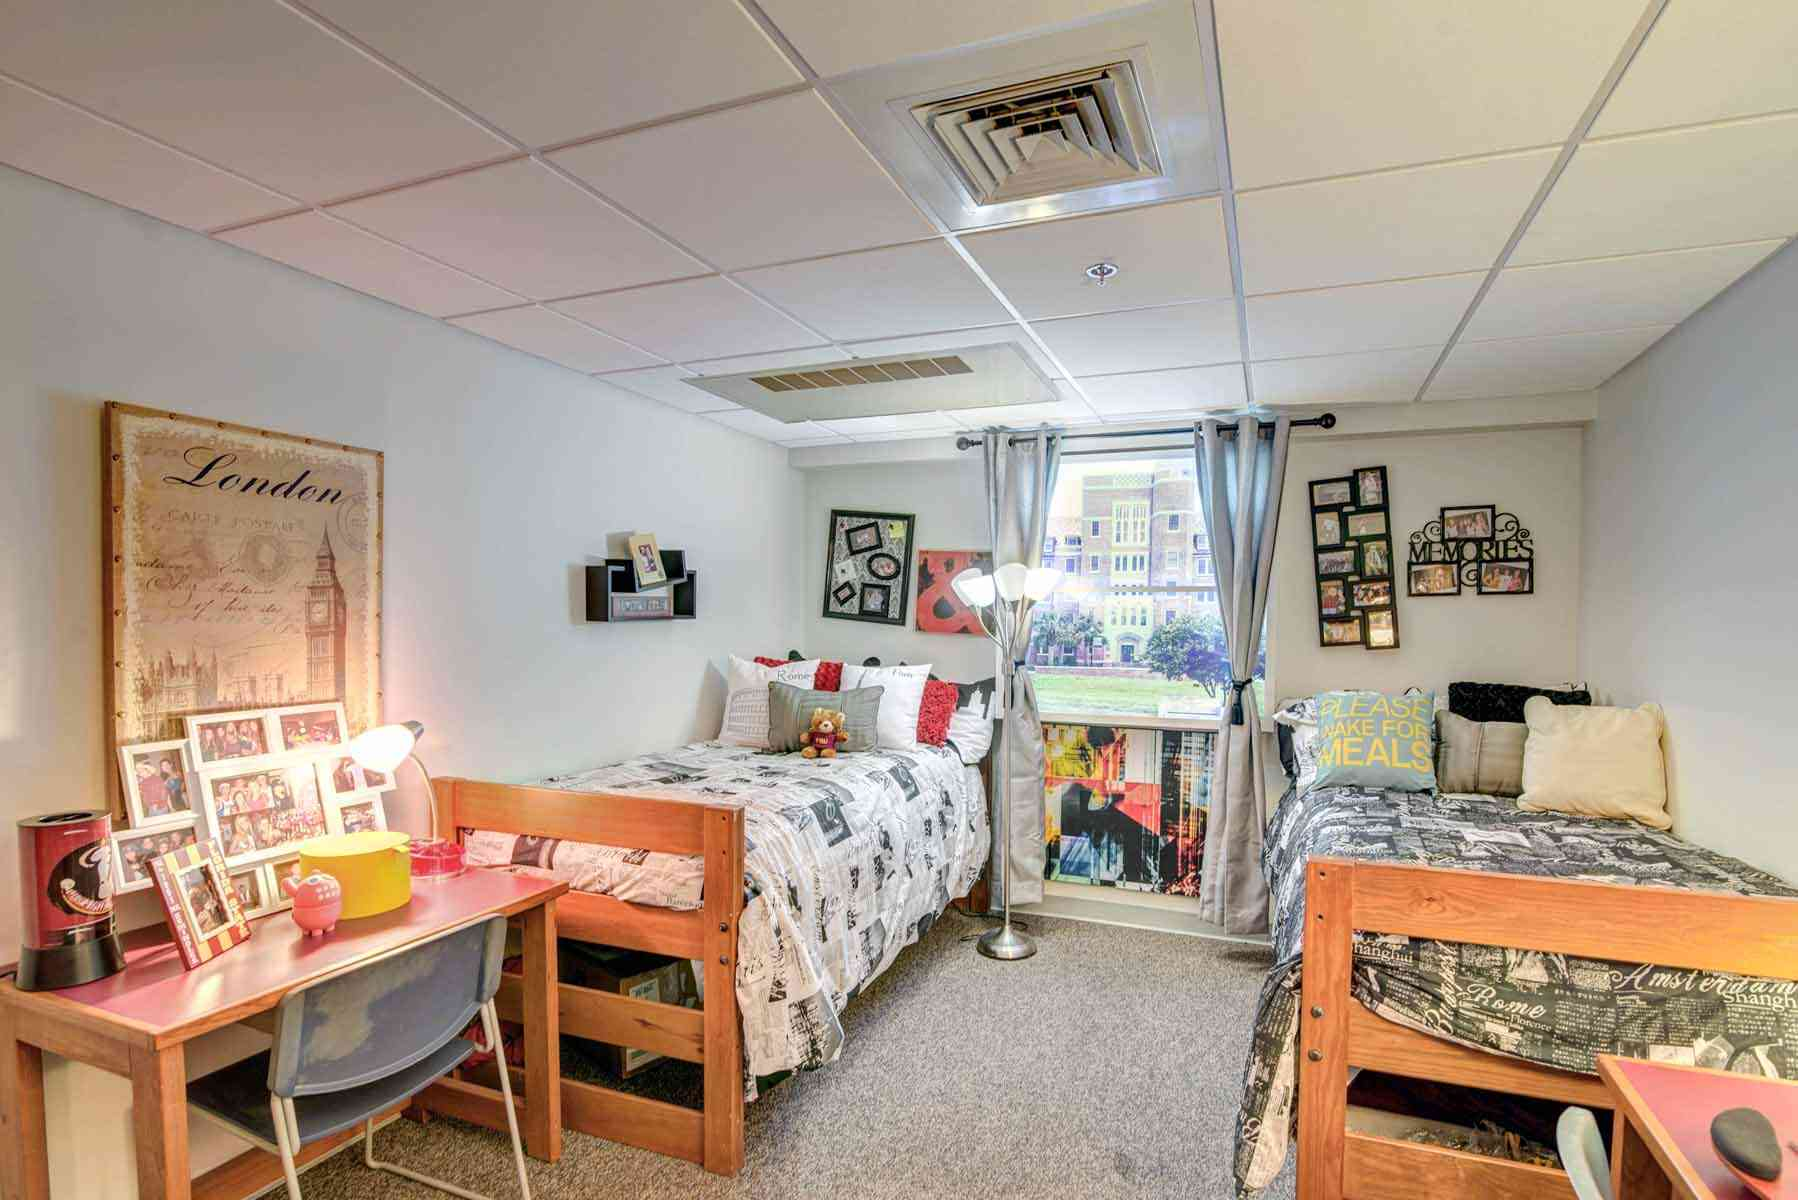 SouthGate-Campus-Centre-Tallahassee-FL-Shared-Bedroom-Unilodgers